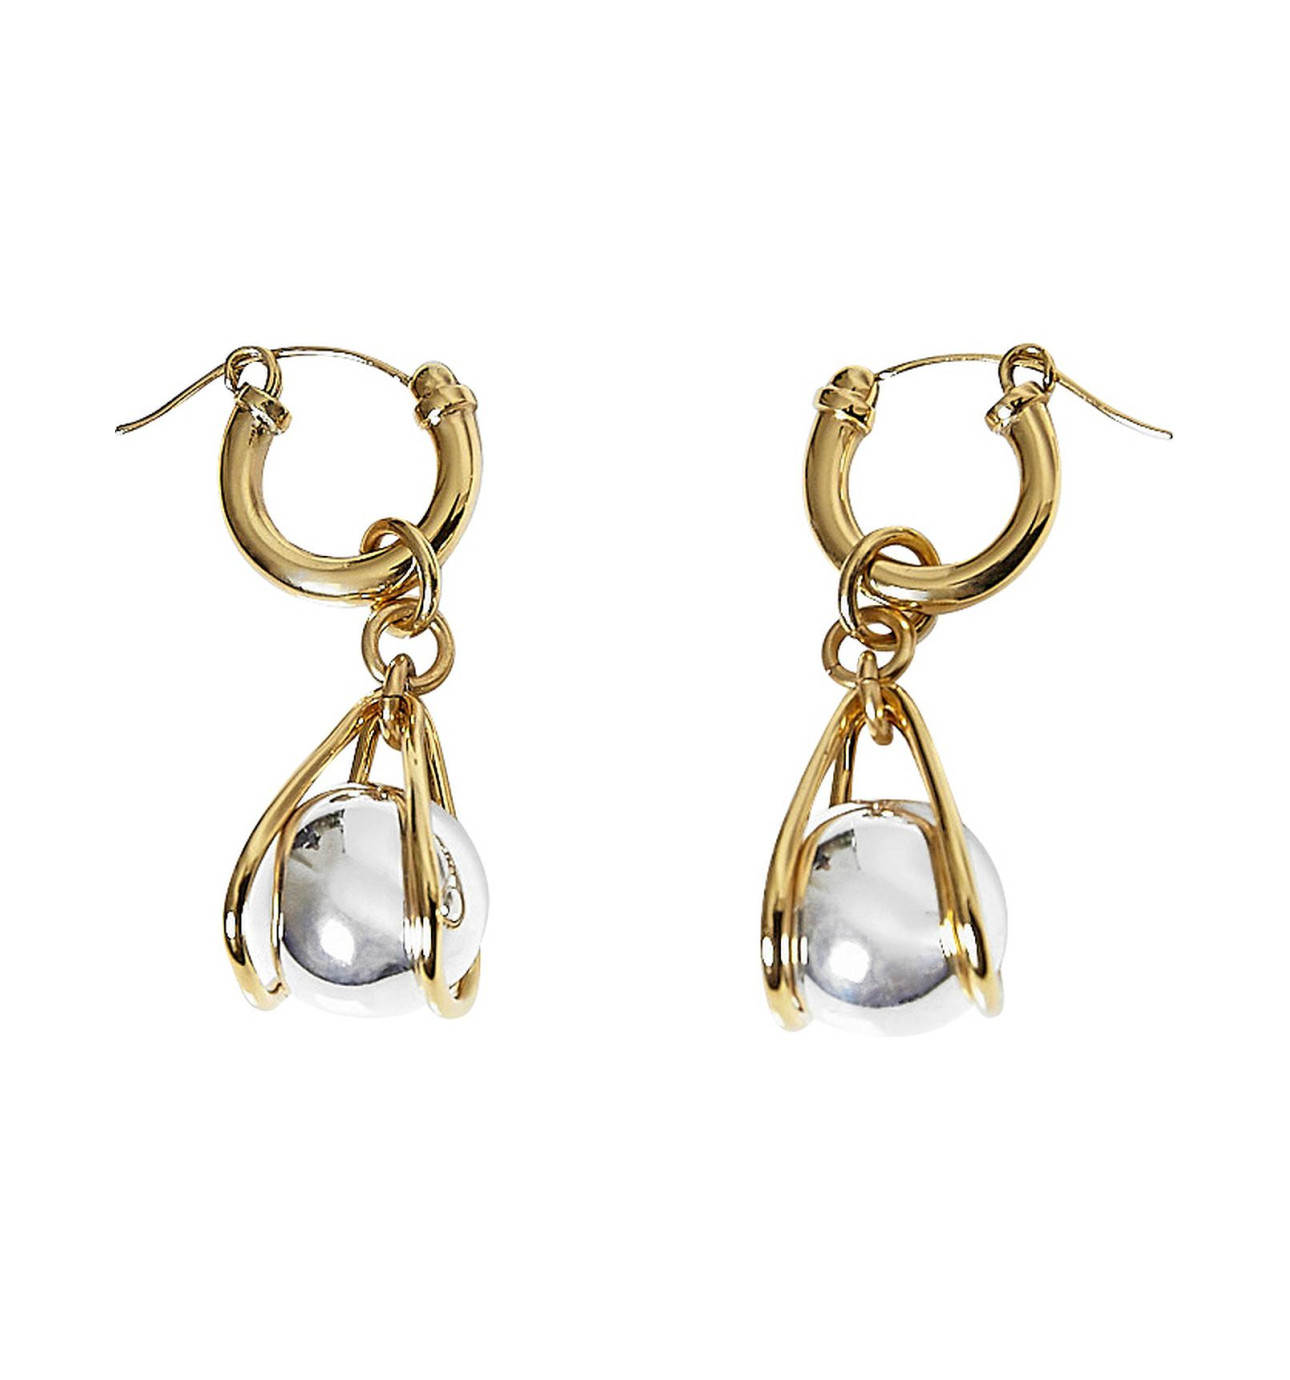 Respiro earrings Ellery DYesRW7tHG